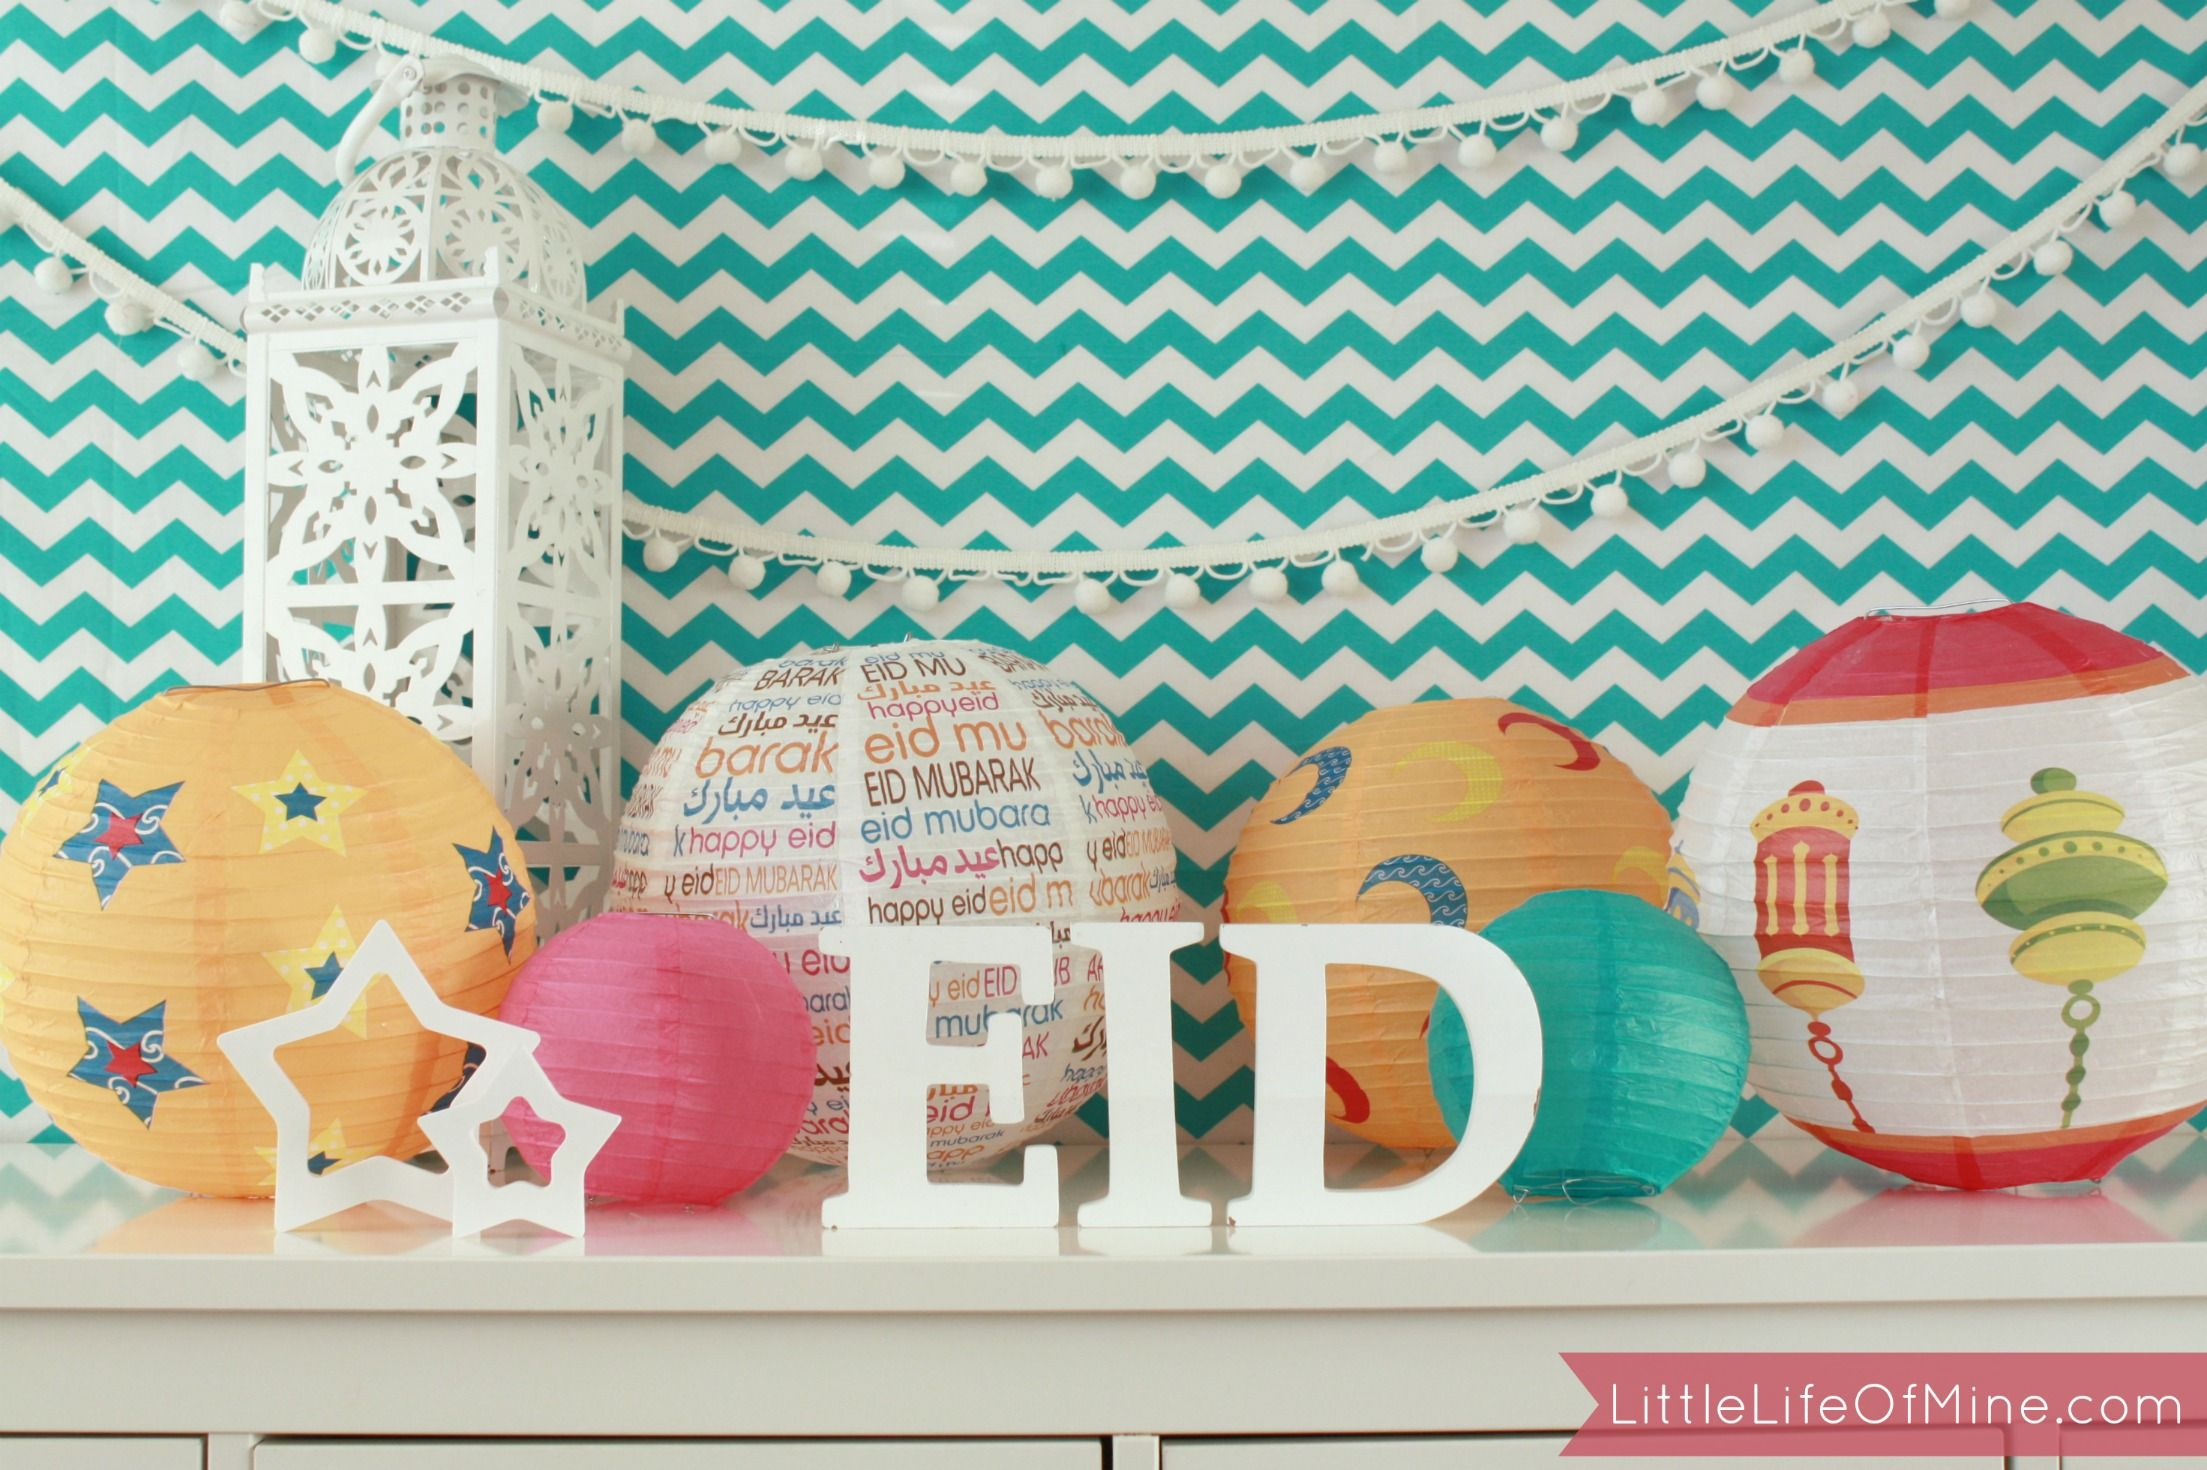 Cool Eid Mubarak Eid Al-Fitr Decorations - c848d49fc24f2c9ce4b7cd92a2d8a9c9  Collection_201079 .jpg